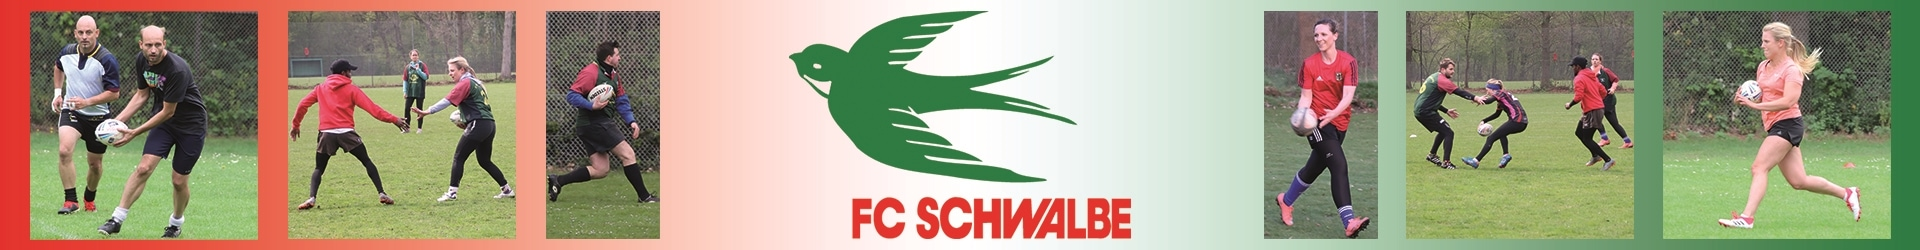 Touch Rugby FC Schwalbe Hannover